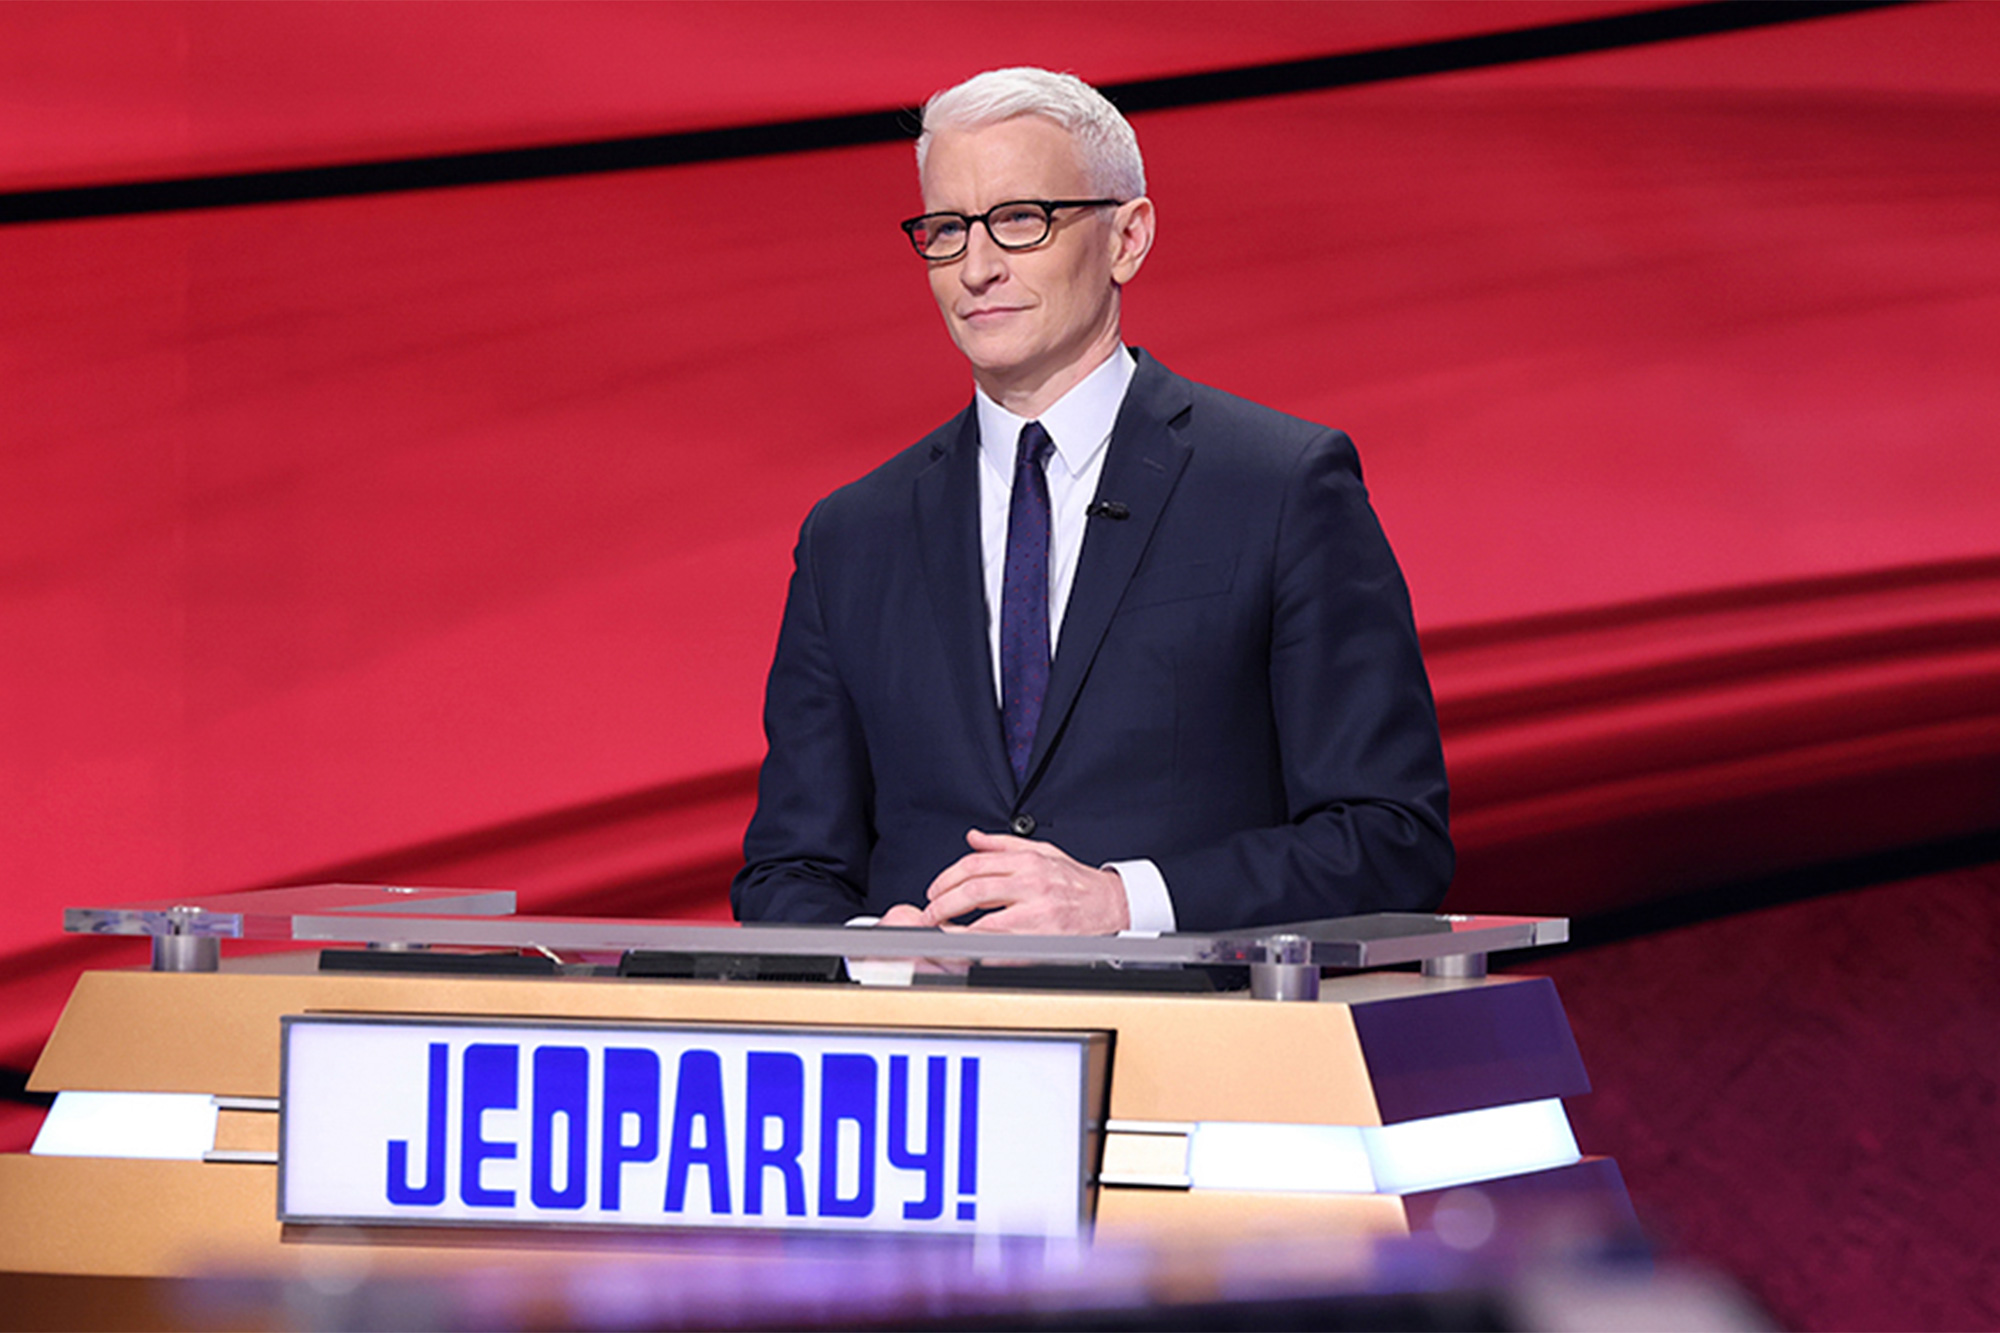 Anderson Cooper on Jeopardy!